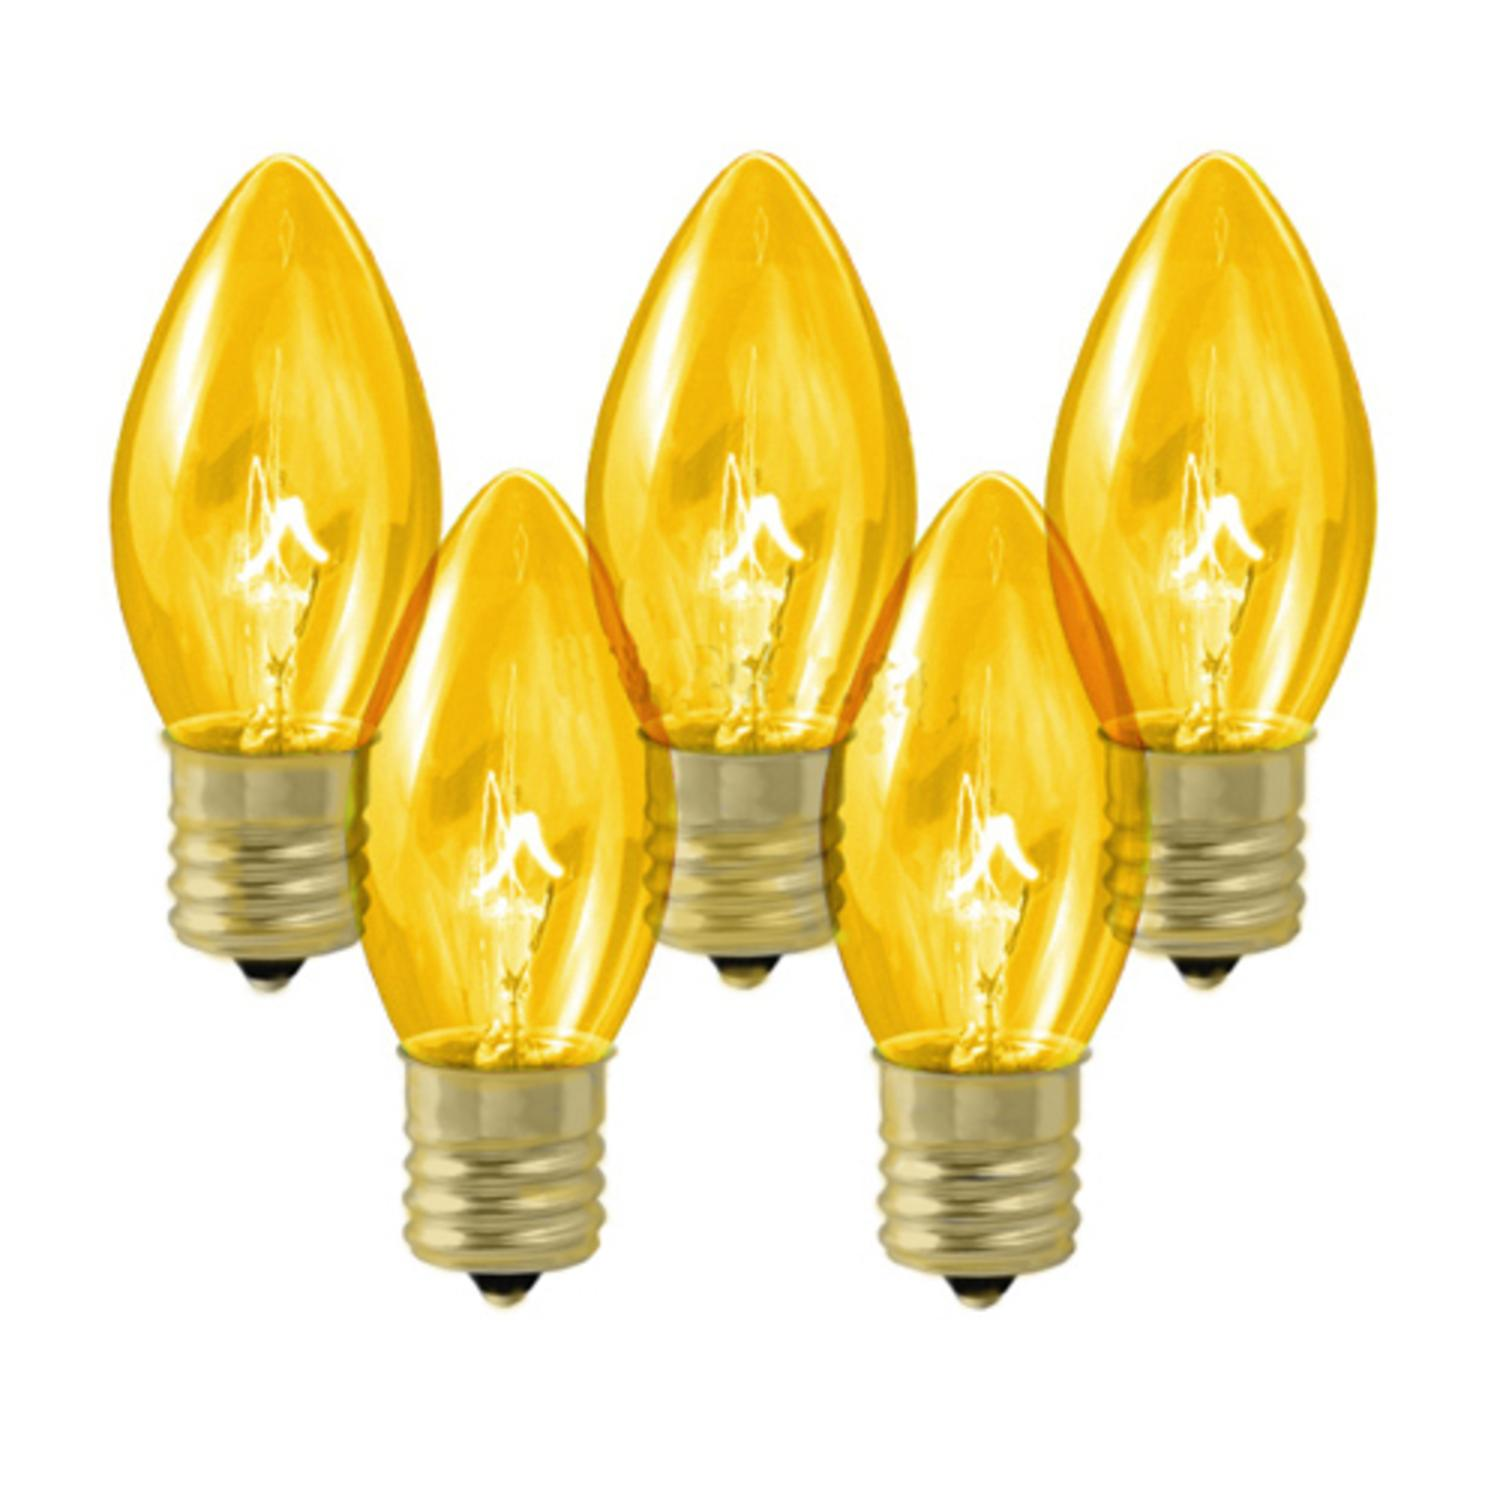 Club Pack of 100 C9 Transparent Gold Replacement Christmas Light Bulbs